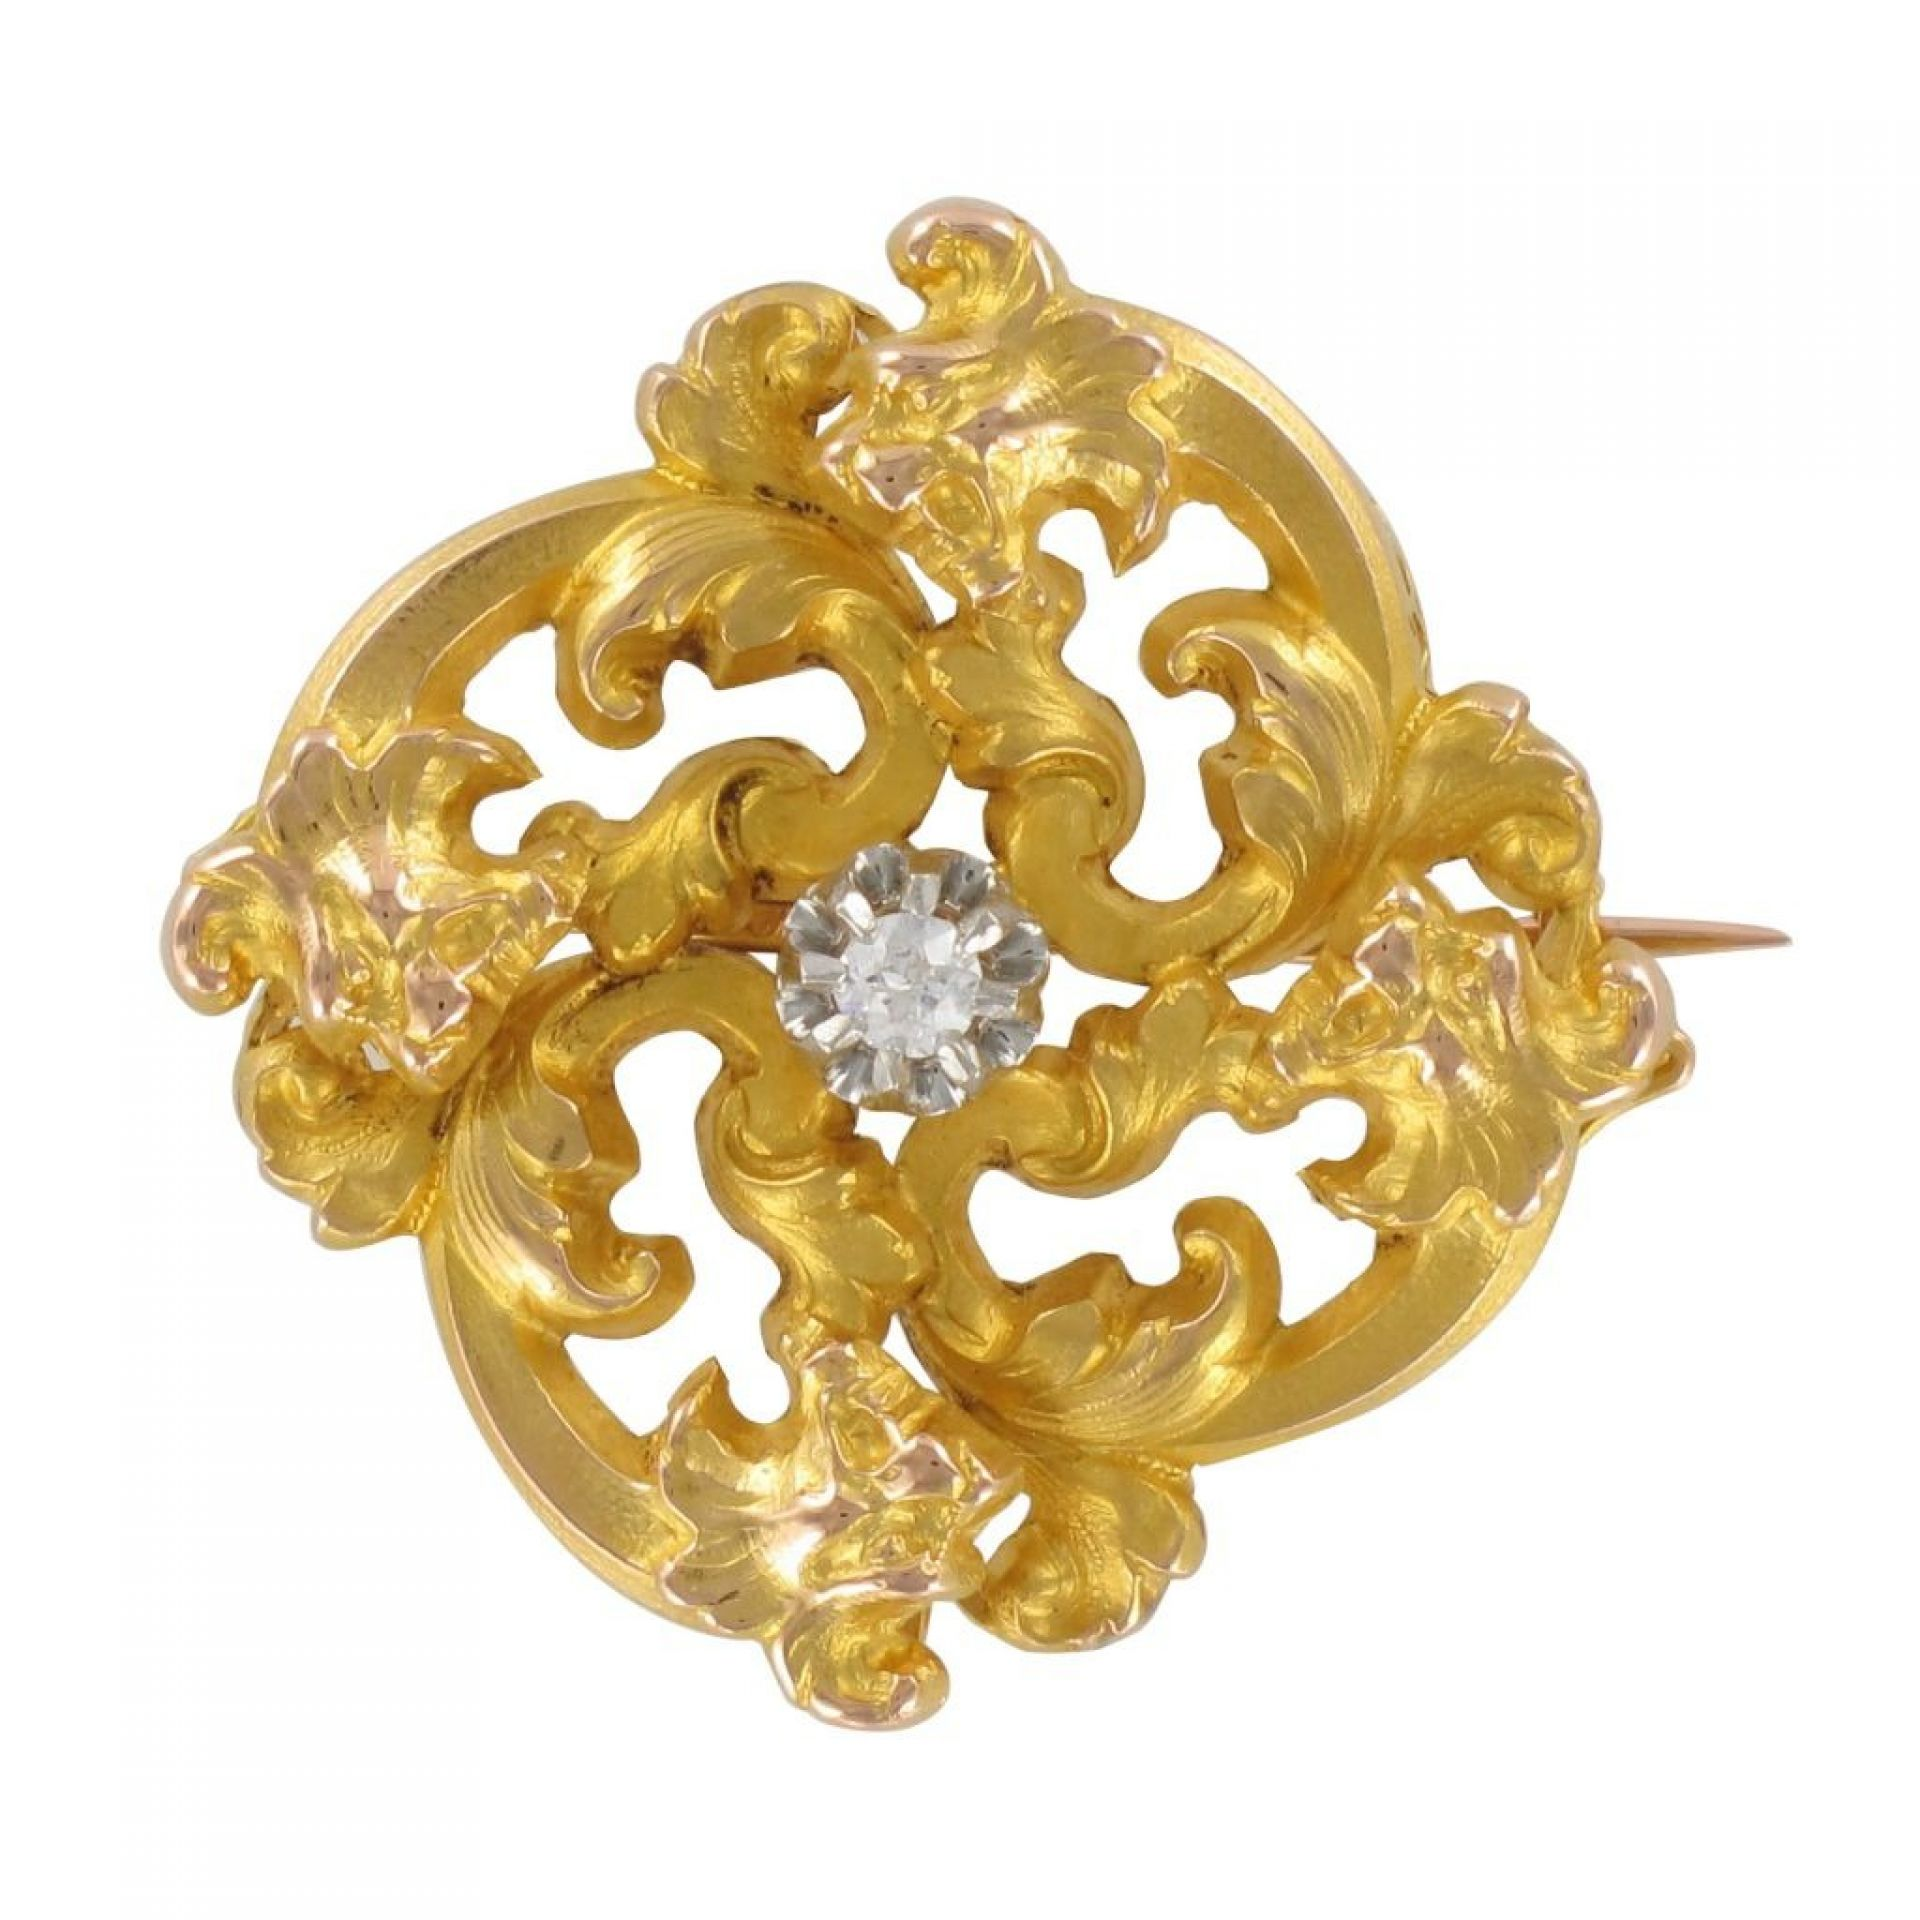 Old diamond art nouveau brooch